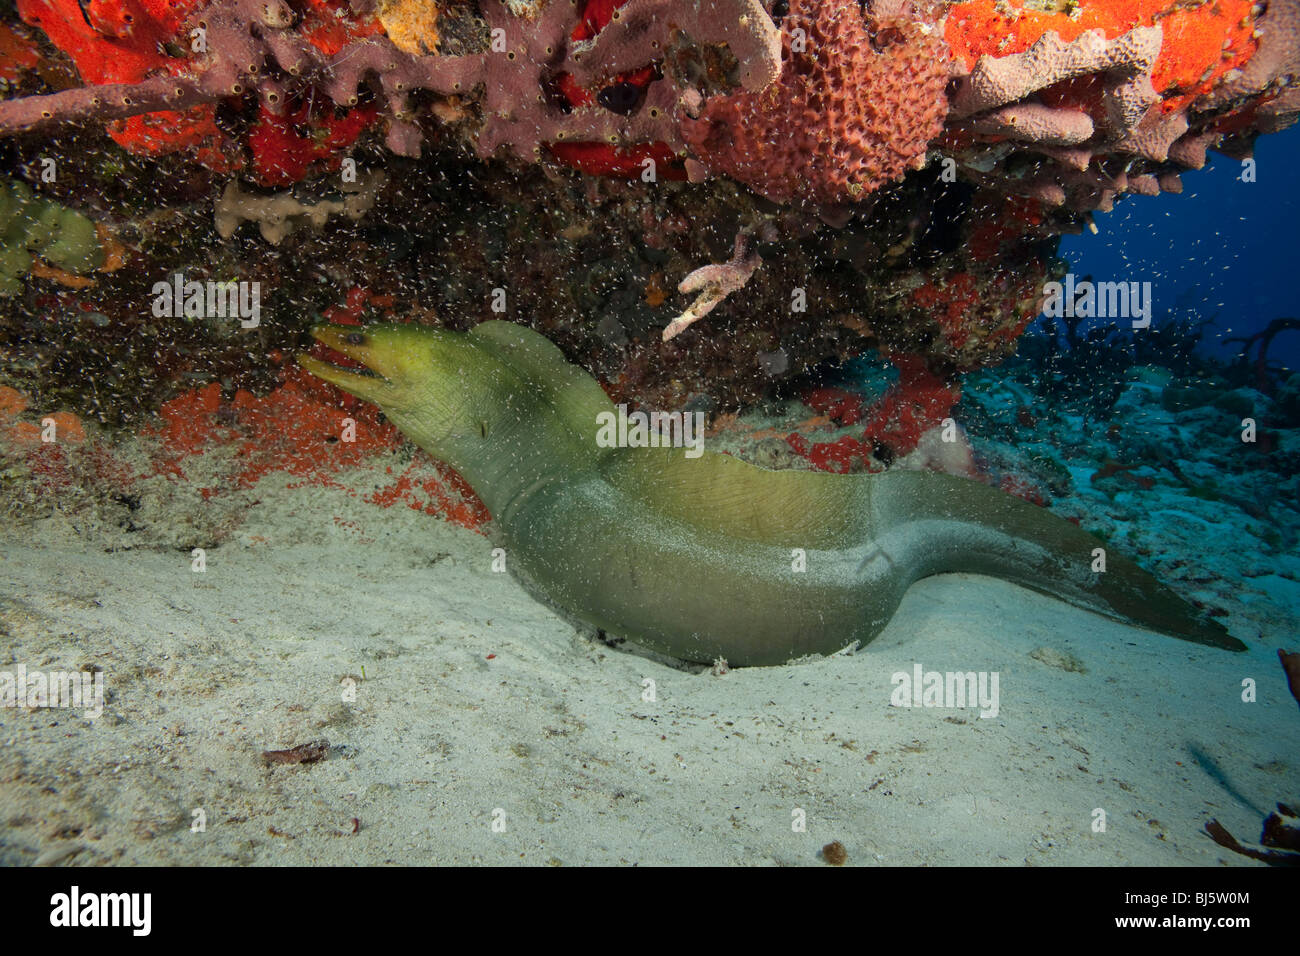 4-5' green moray eel on Villa Blanca Wall divesite, Cozumel, Mexico - Stock Image